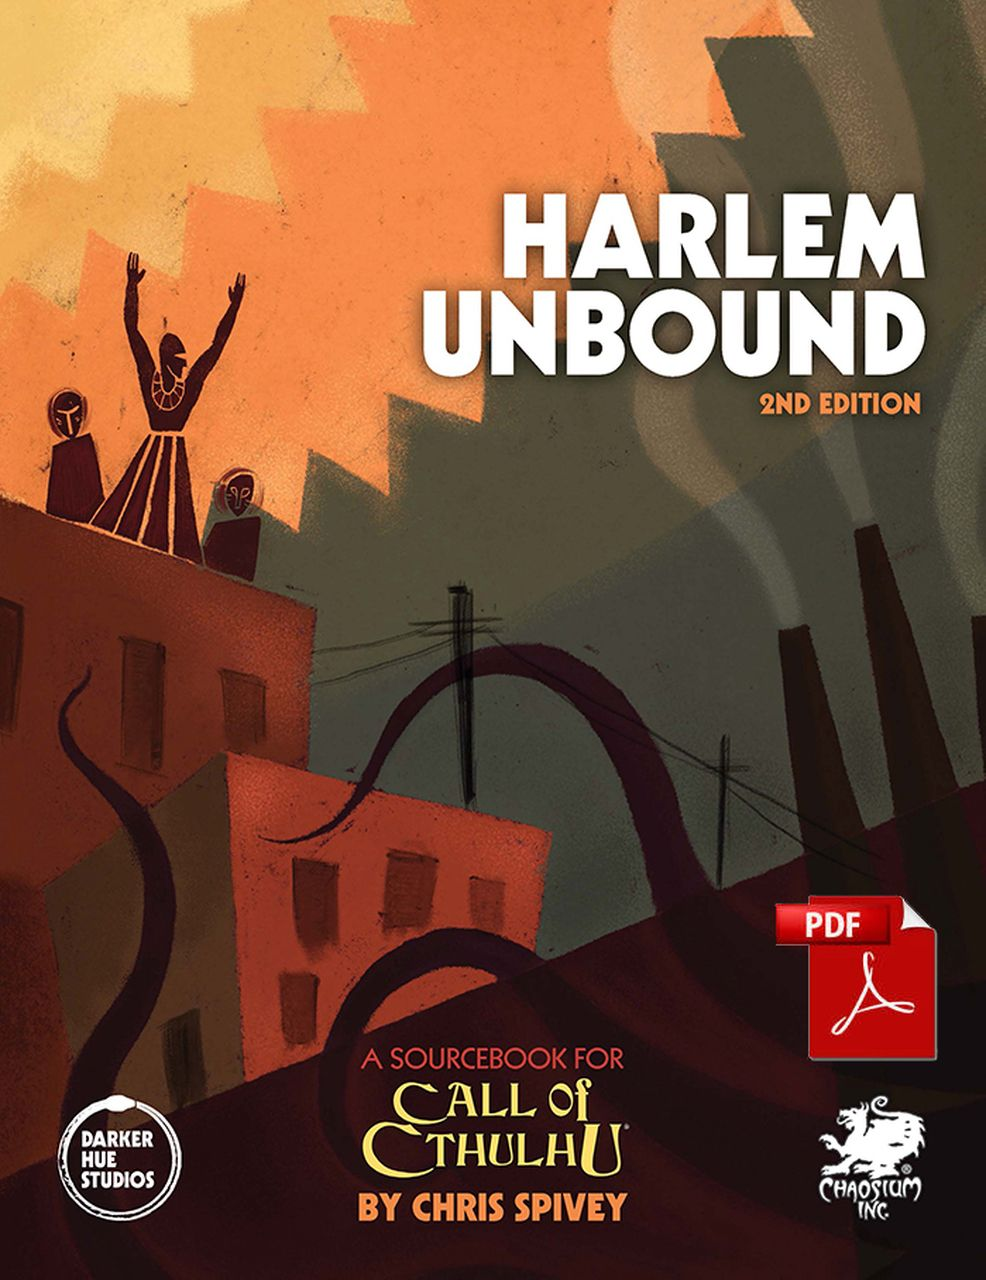 Supplement your role-playing with Harlem Unbound 2nd Edition